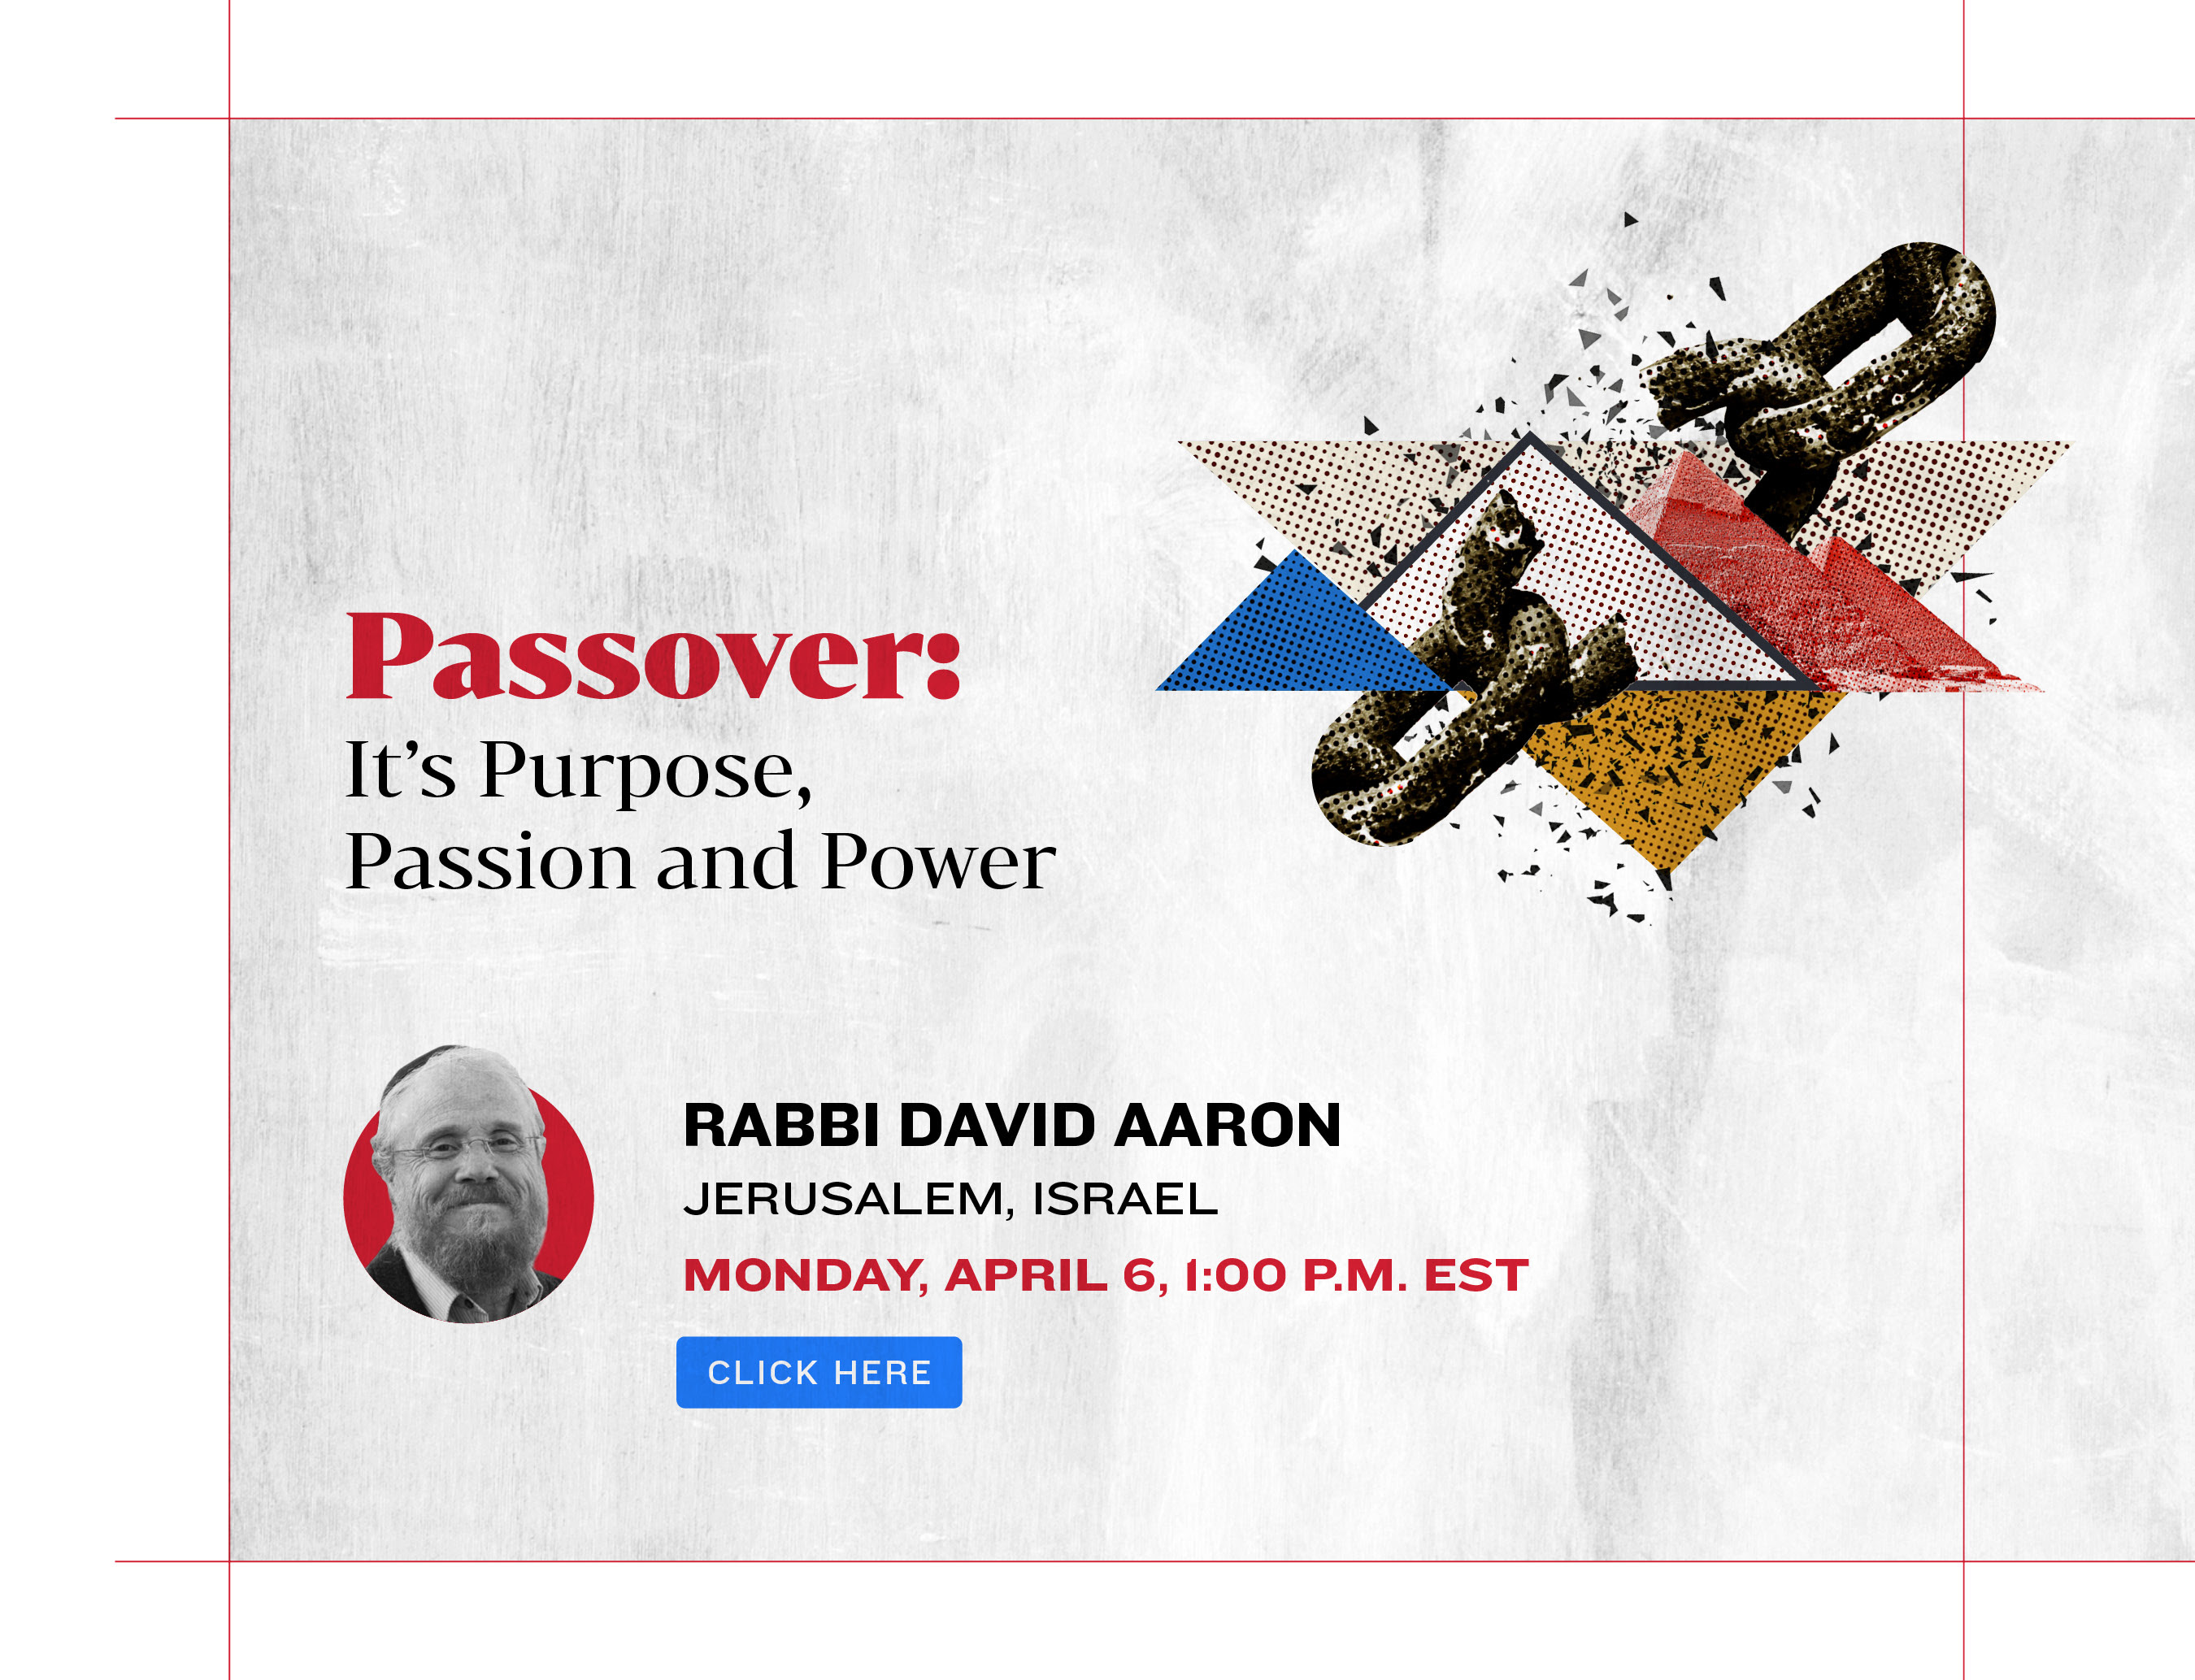 Passover: It's Purpose, Passion and Power